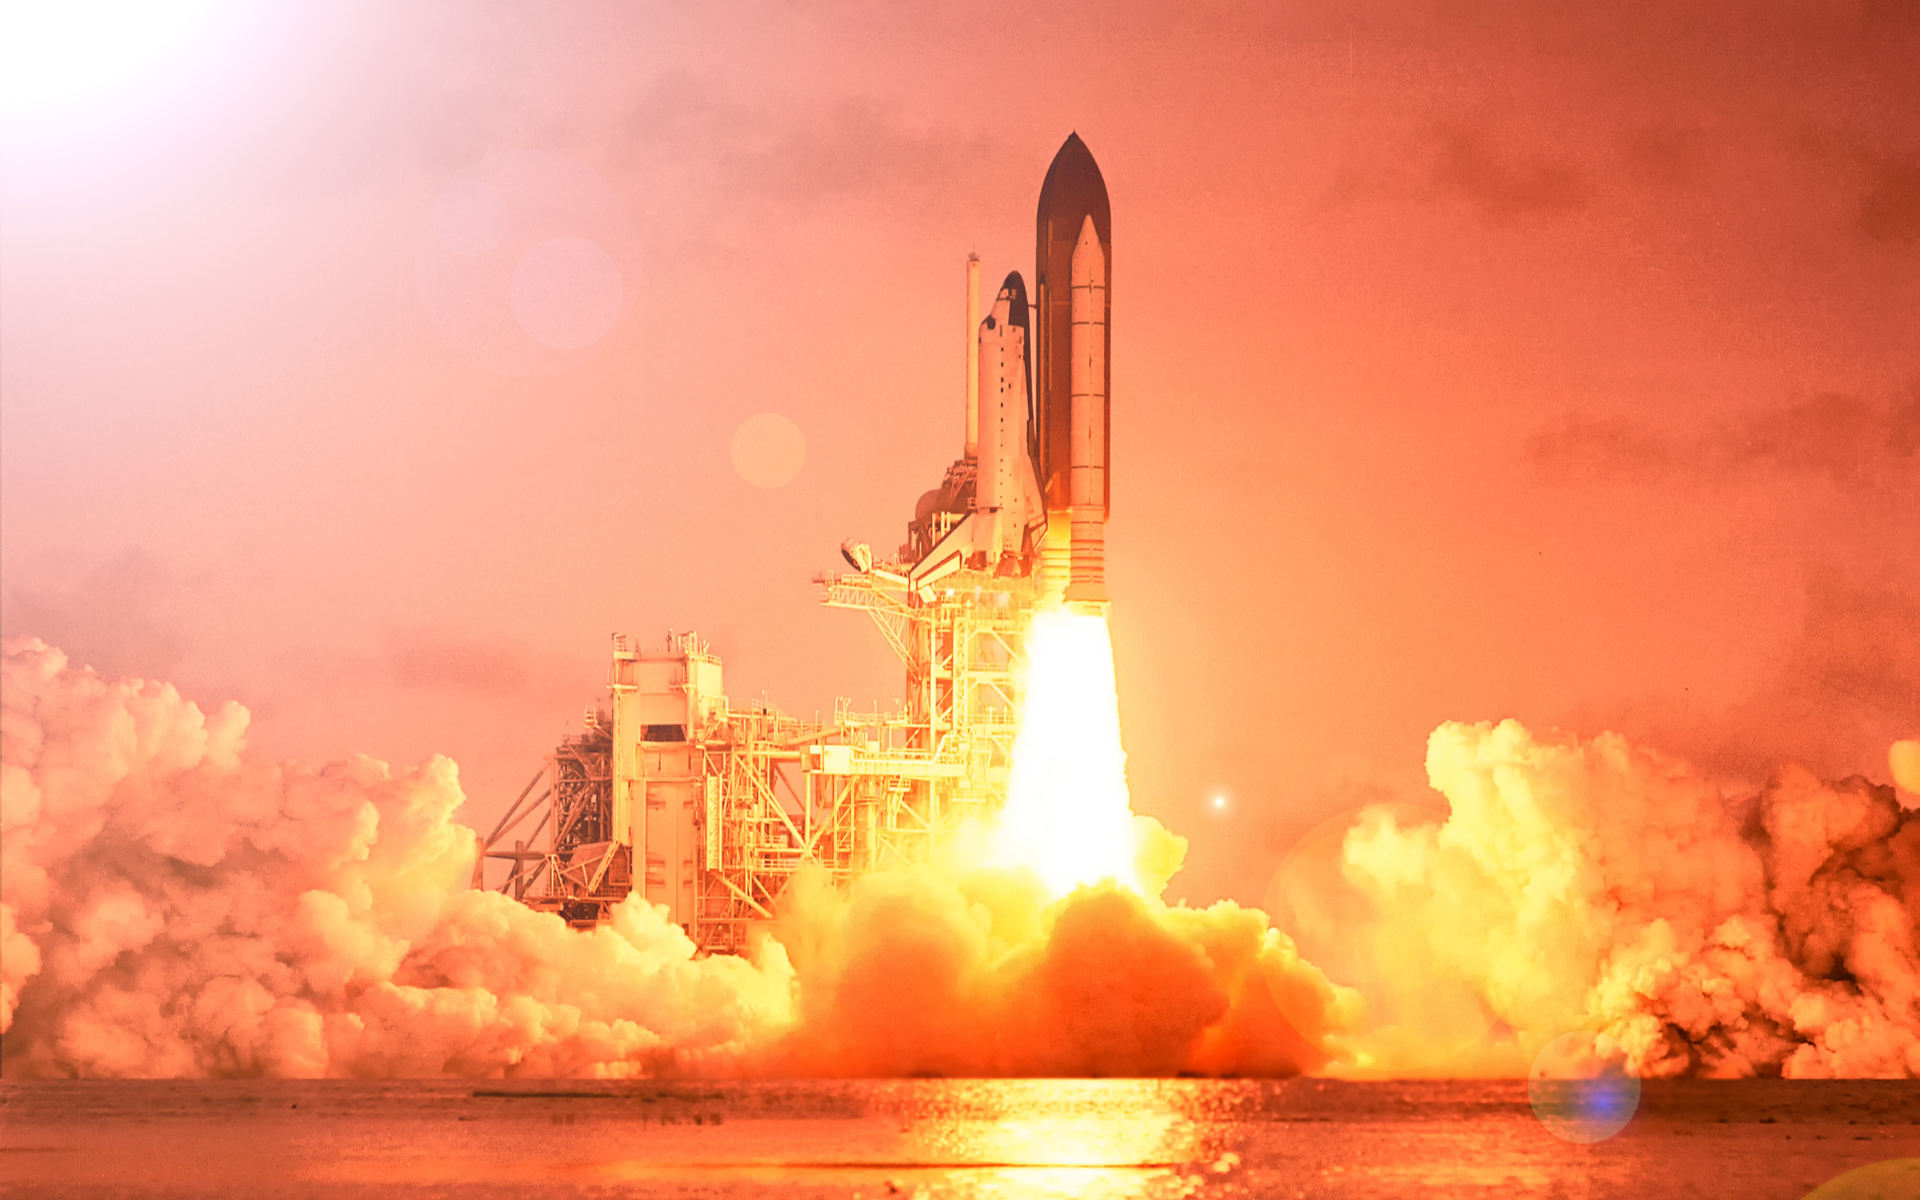 Binance rocket launch binance chain